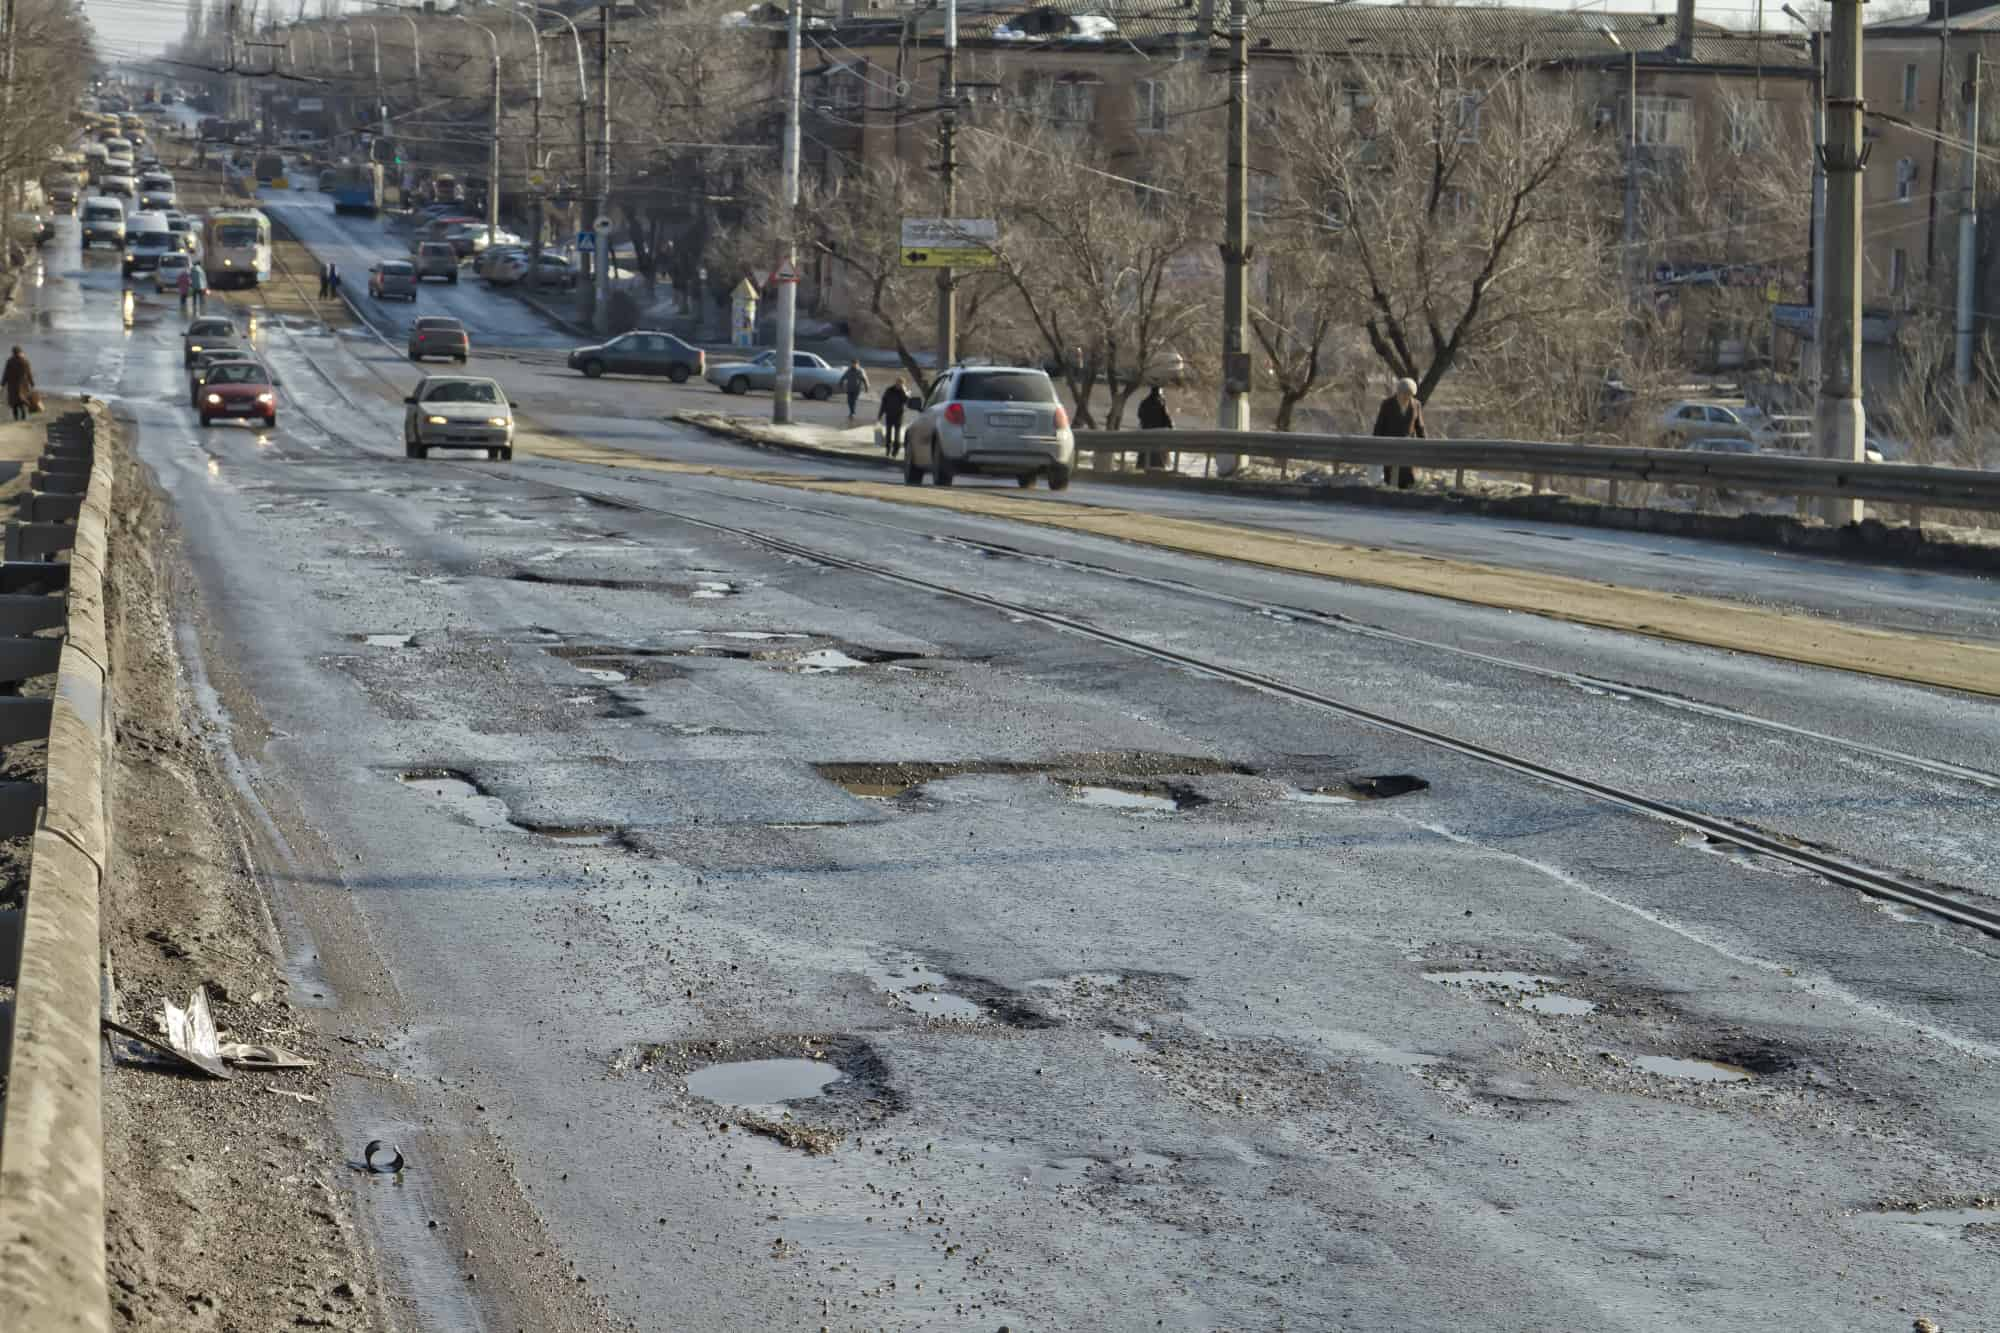 Stretch of uneven road with multiple potholes